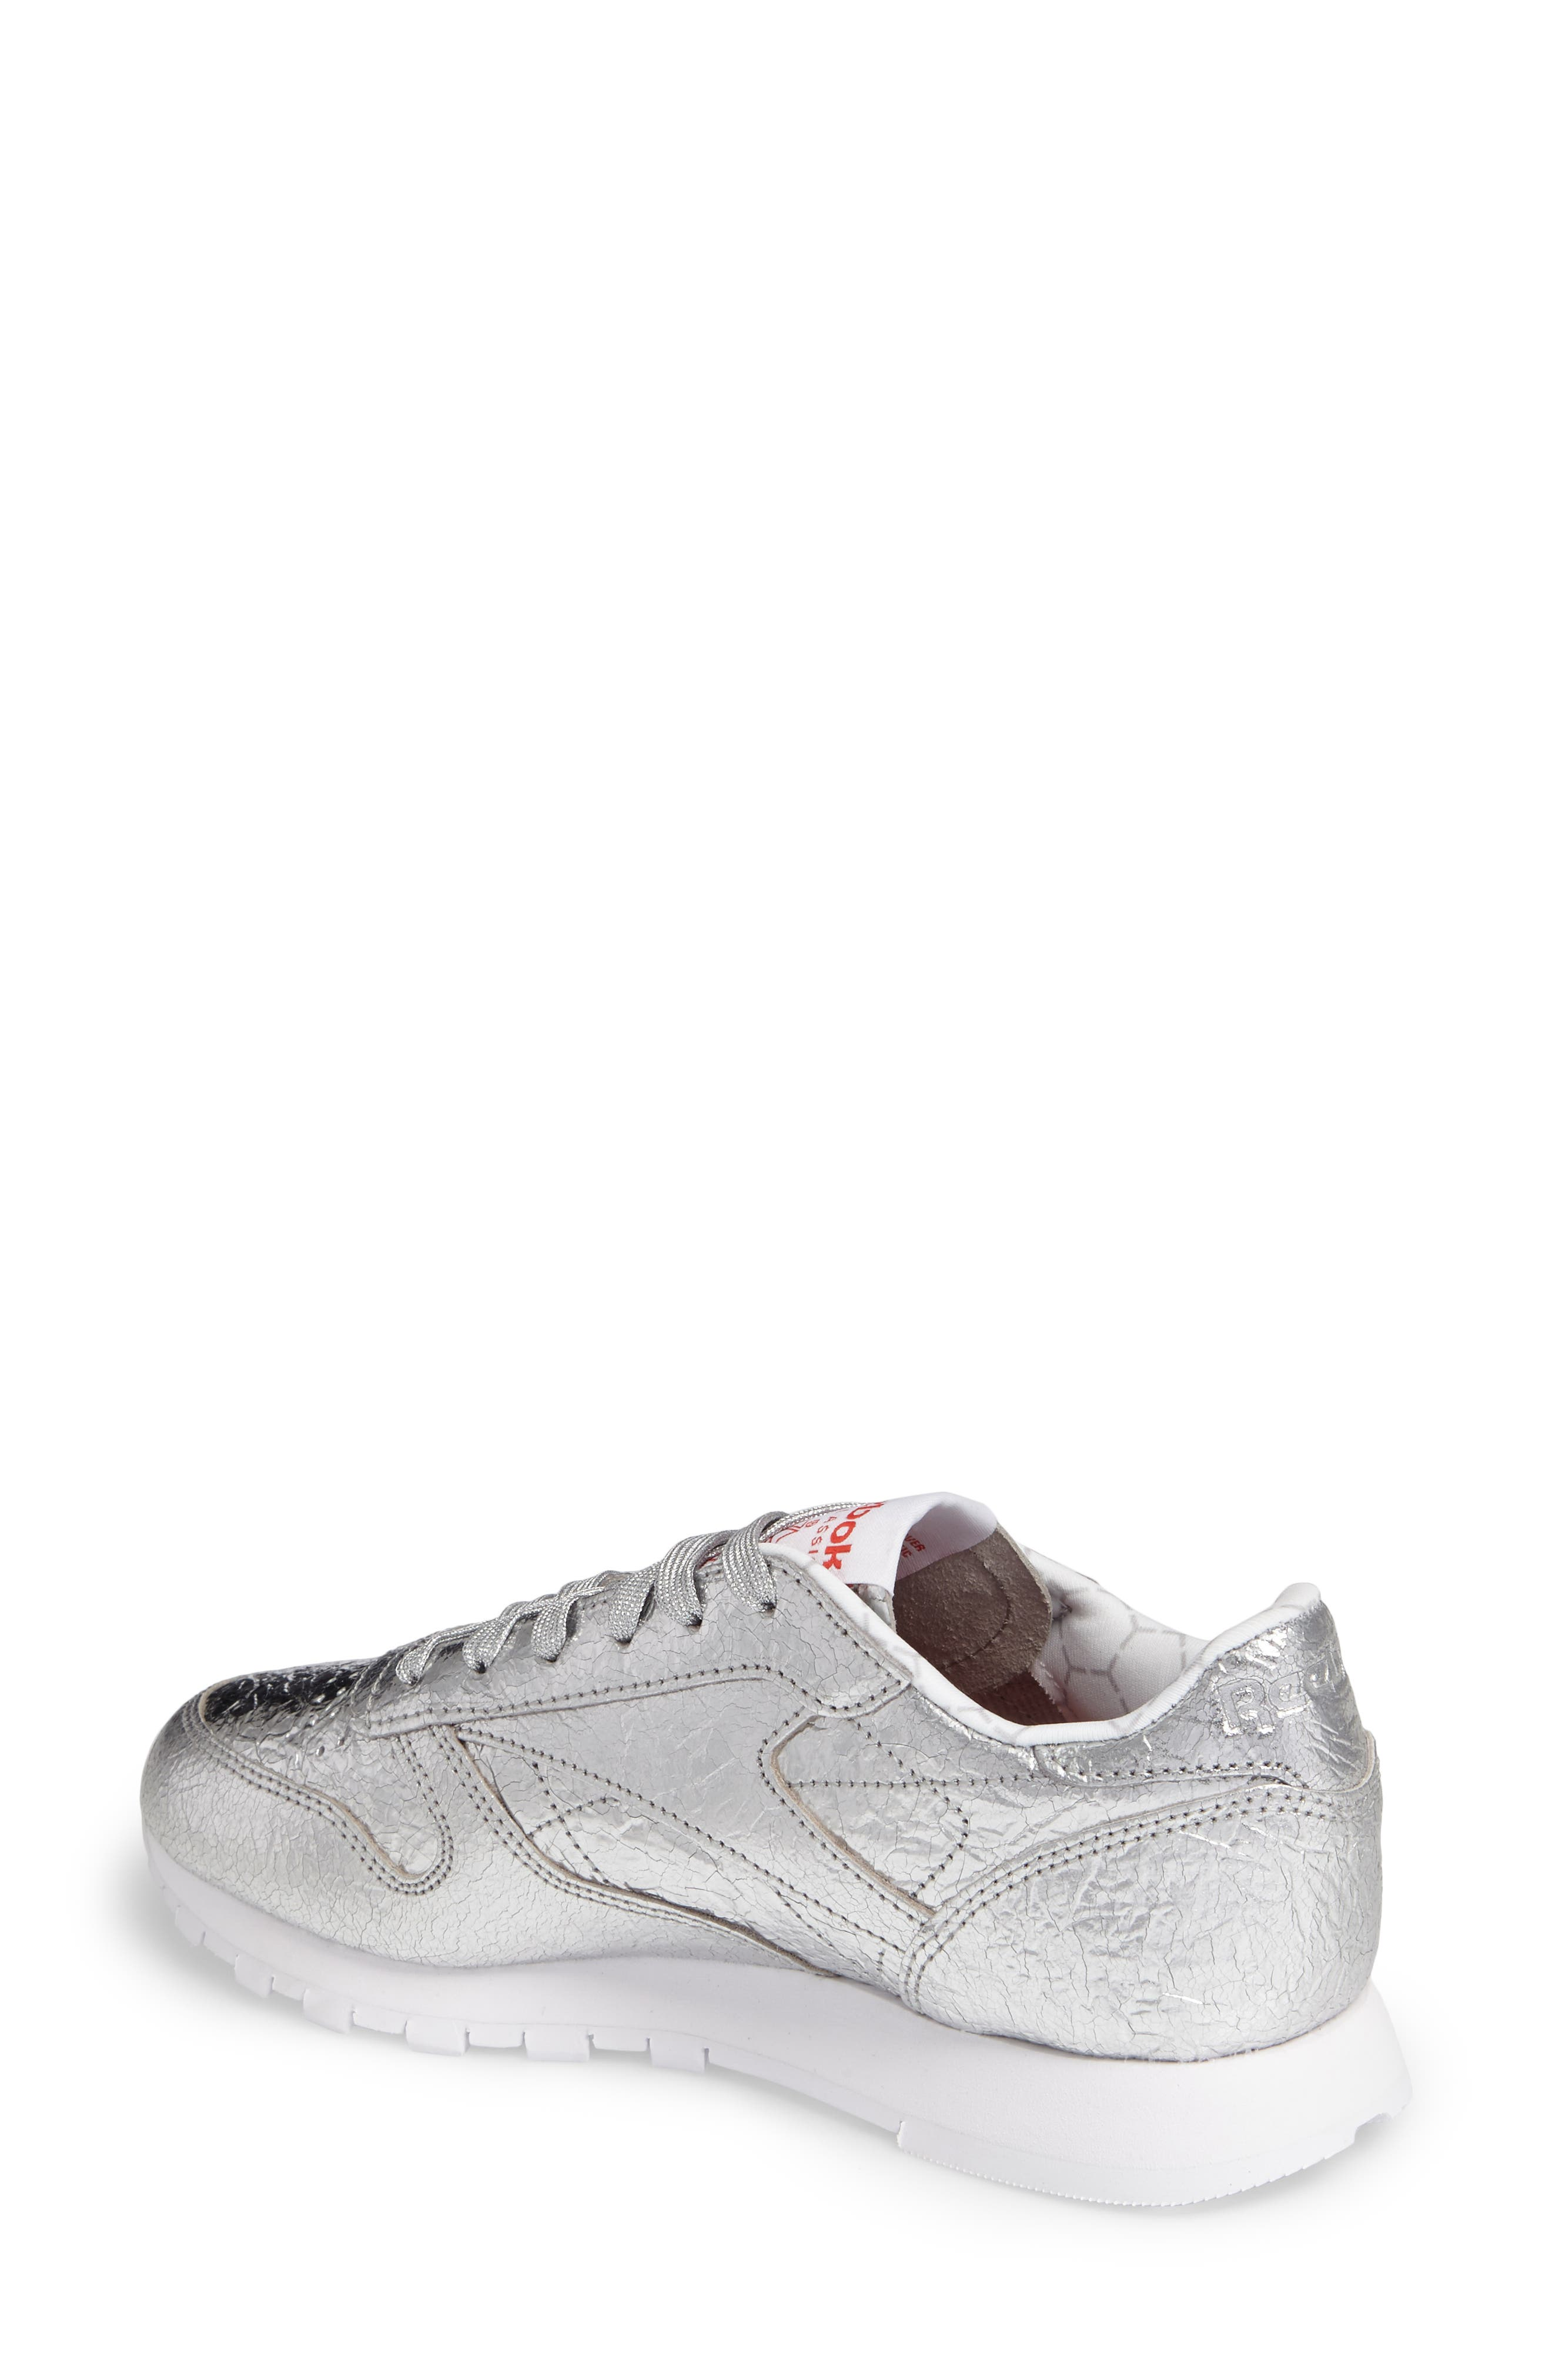 Classic Leather HD Foil Sneaker,                             Alternate thumbnail 2, color,                             Silver/ Grey/ Red/ White